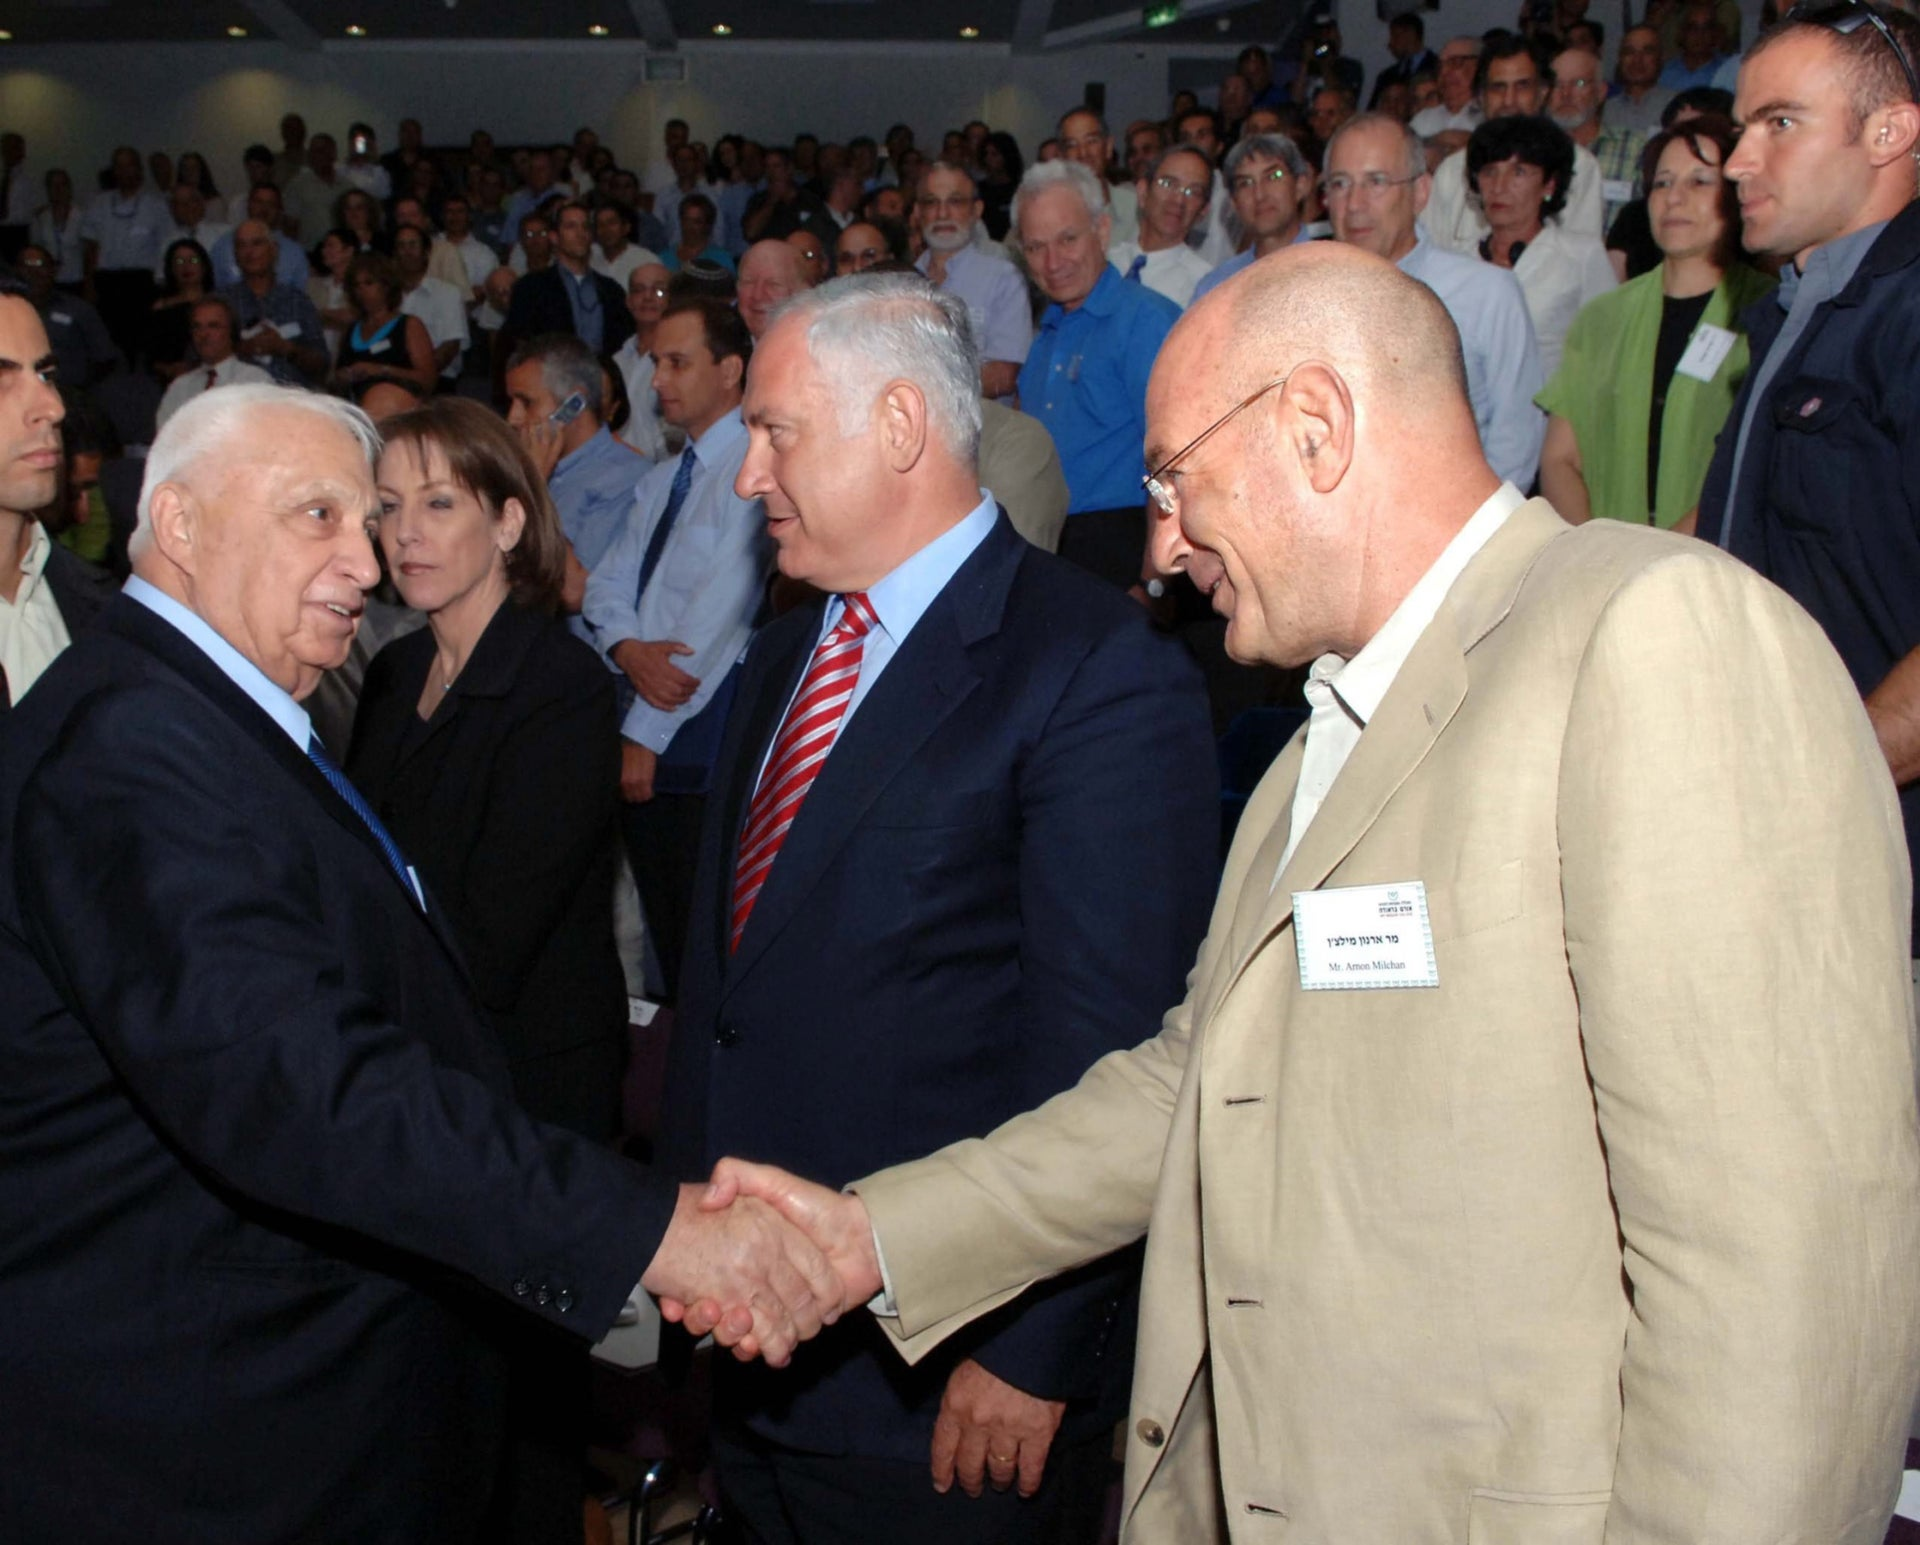 Arnon Milchan, right, shaking hands with Prime Minister Ariel Sharon in 2005.